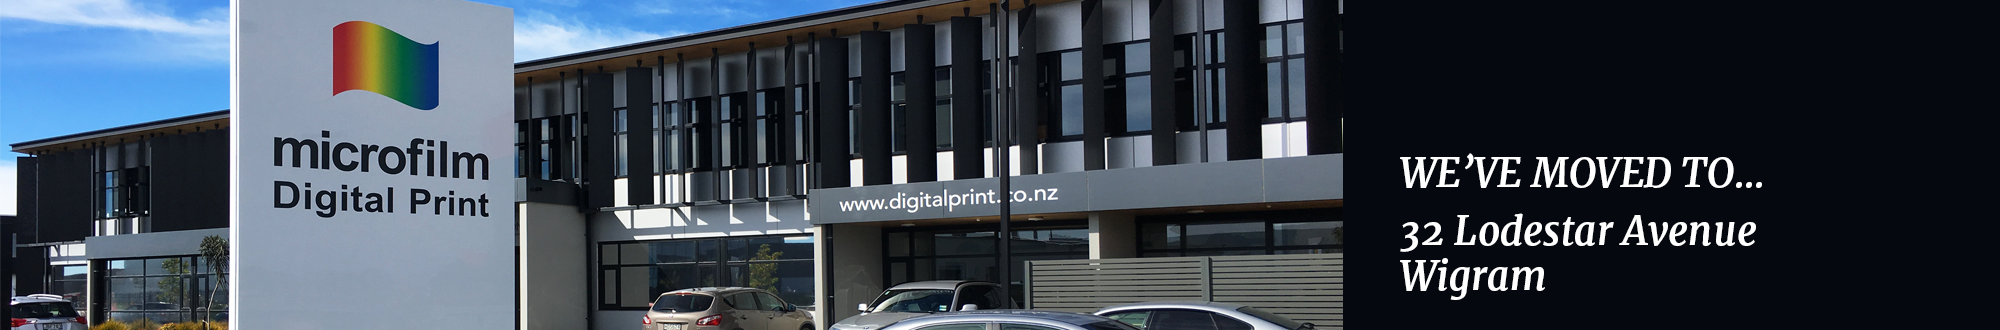 Microfilm Digital Print Building